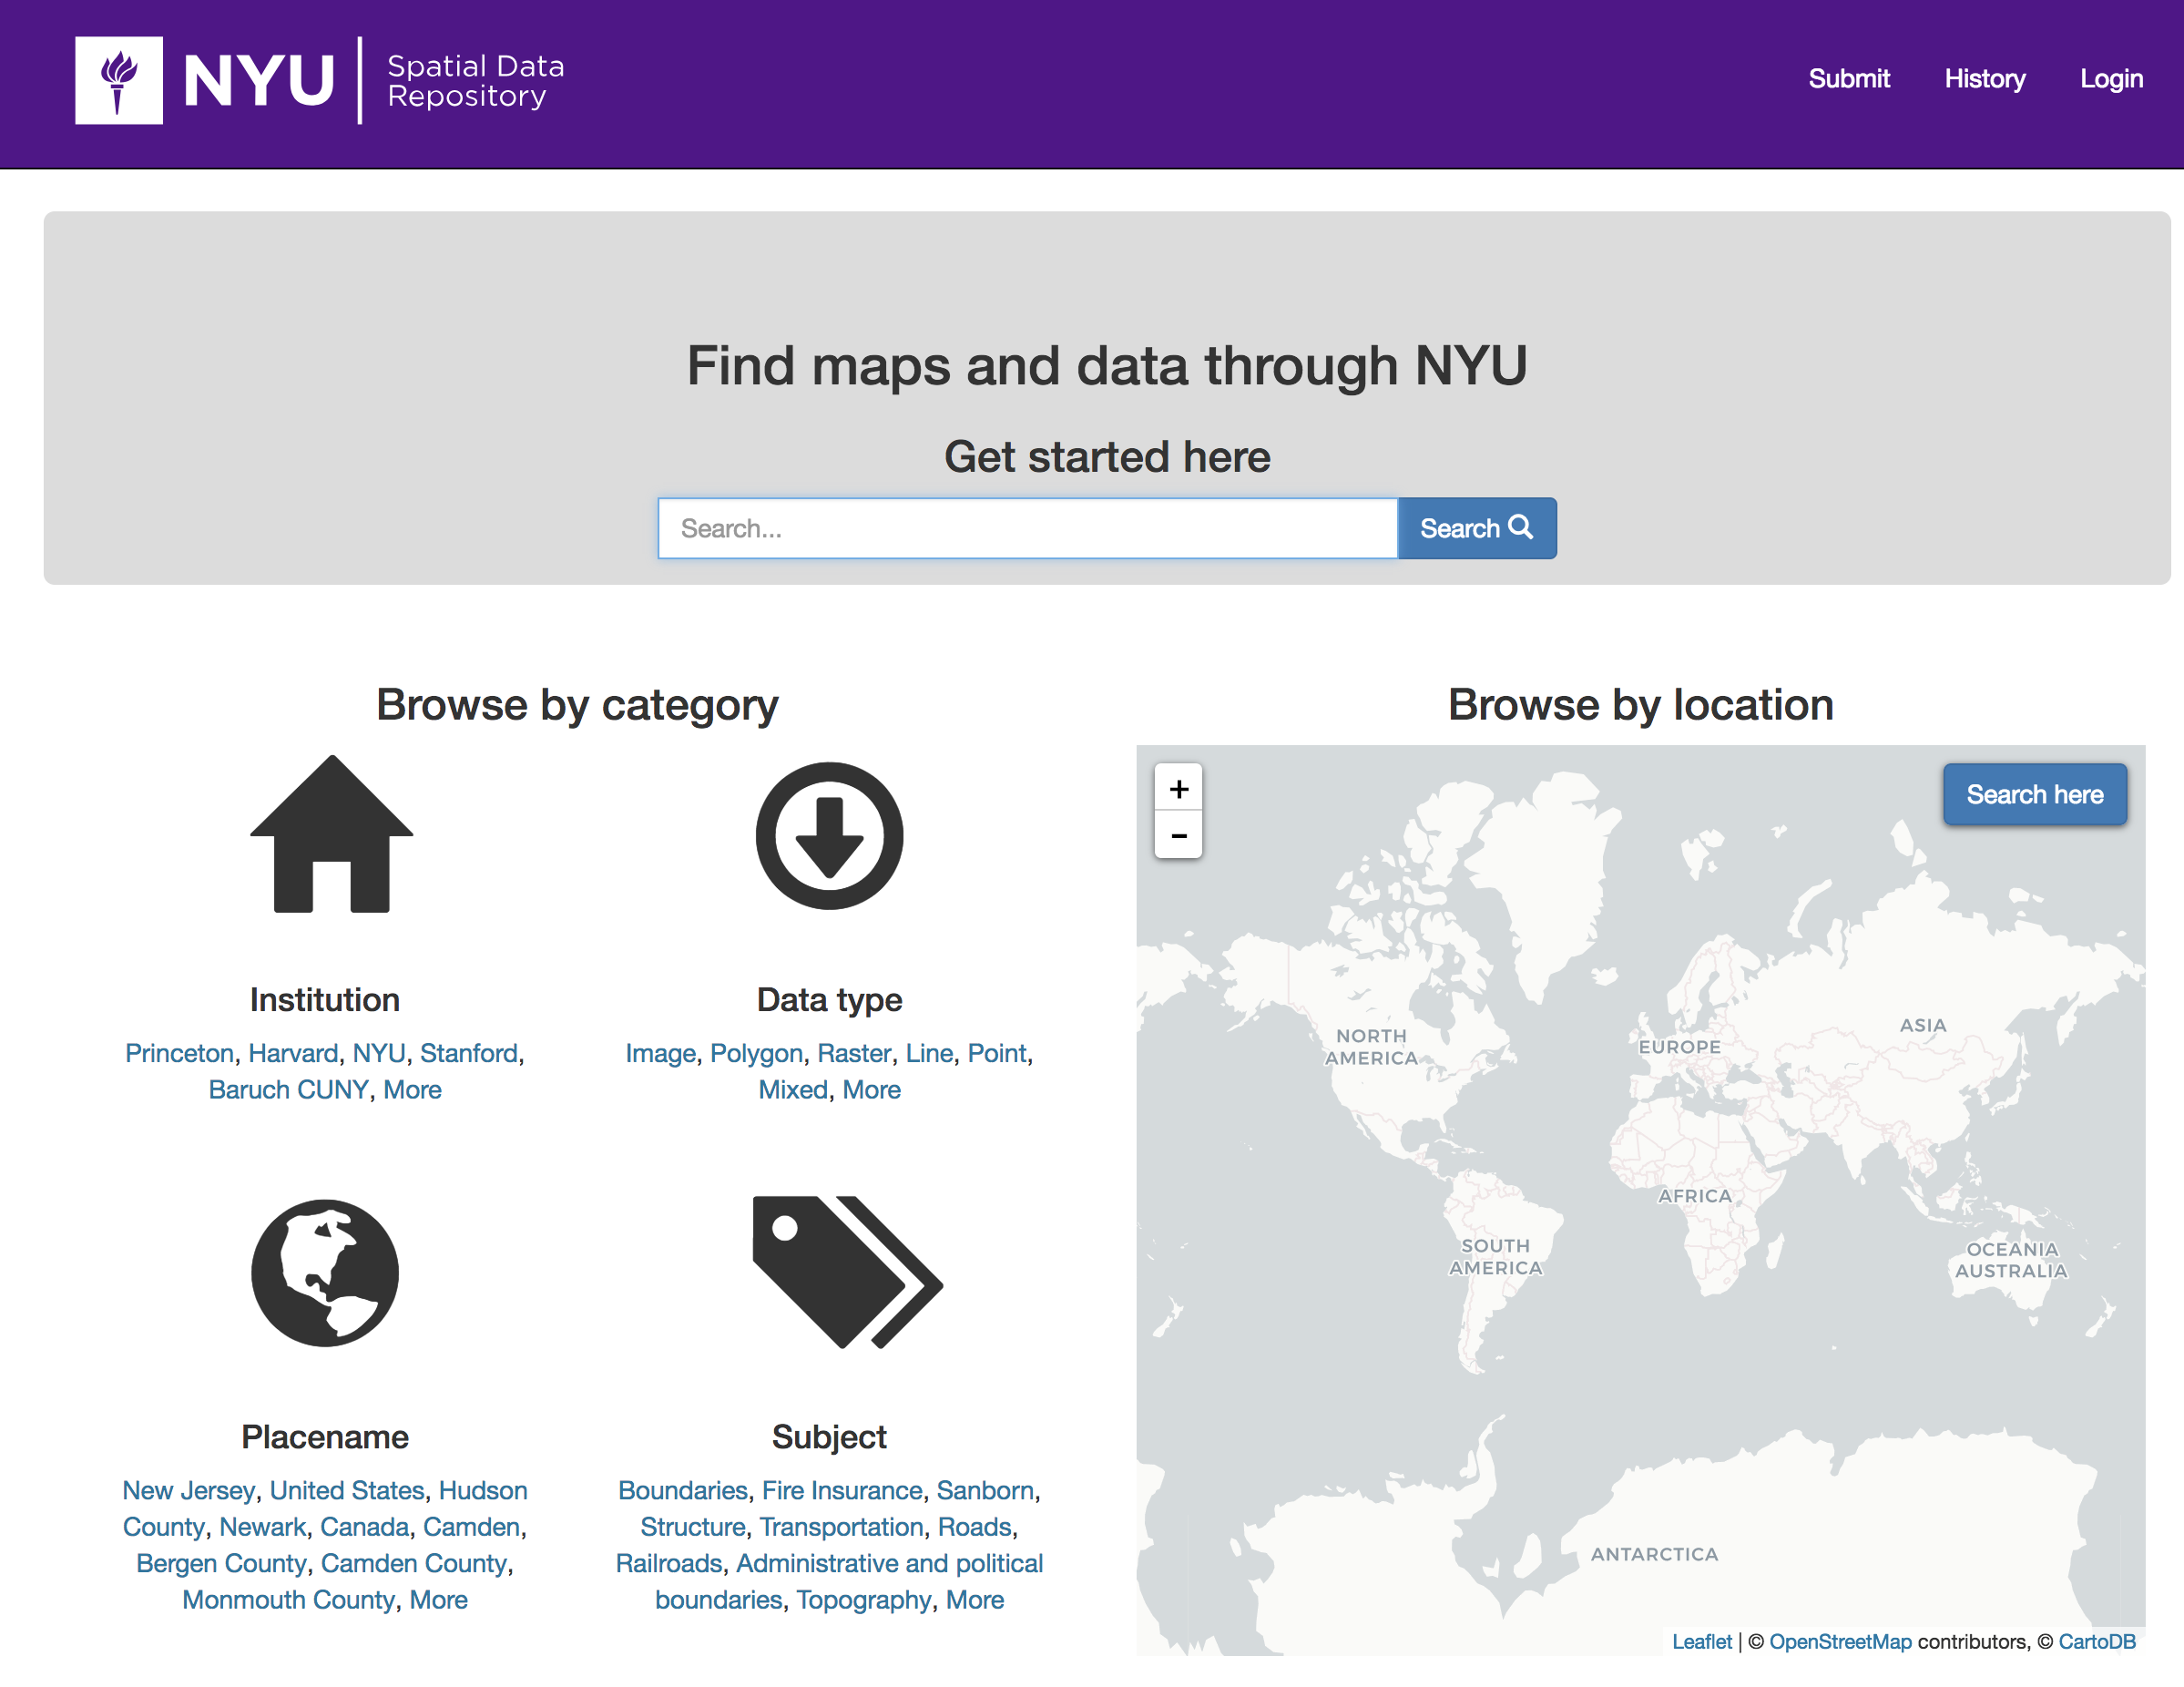 Digital Humanities Meetup: Intro to NYU's Spatial Data Repository